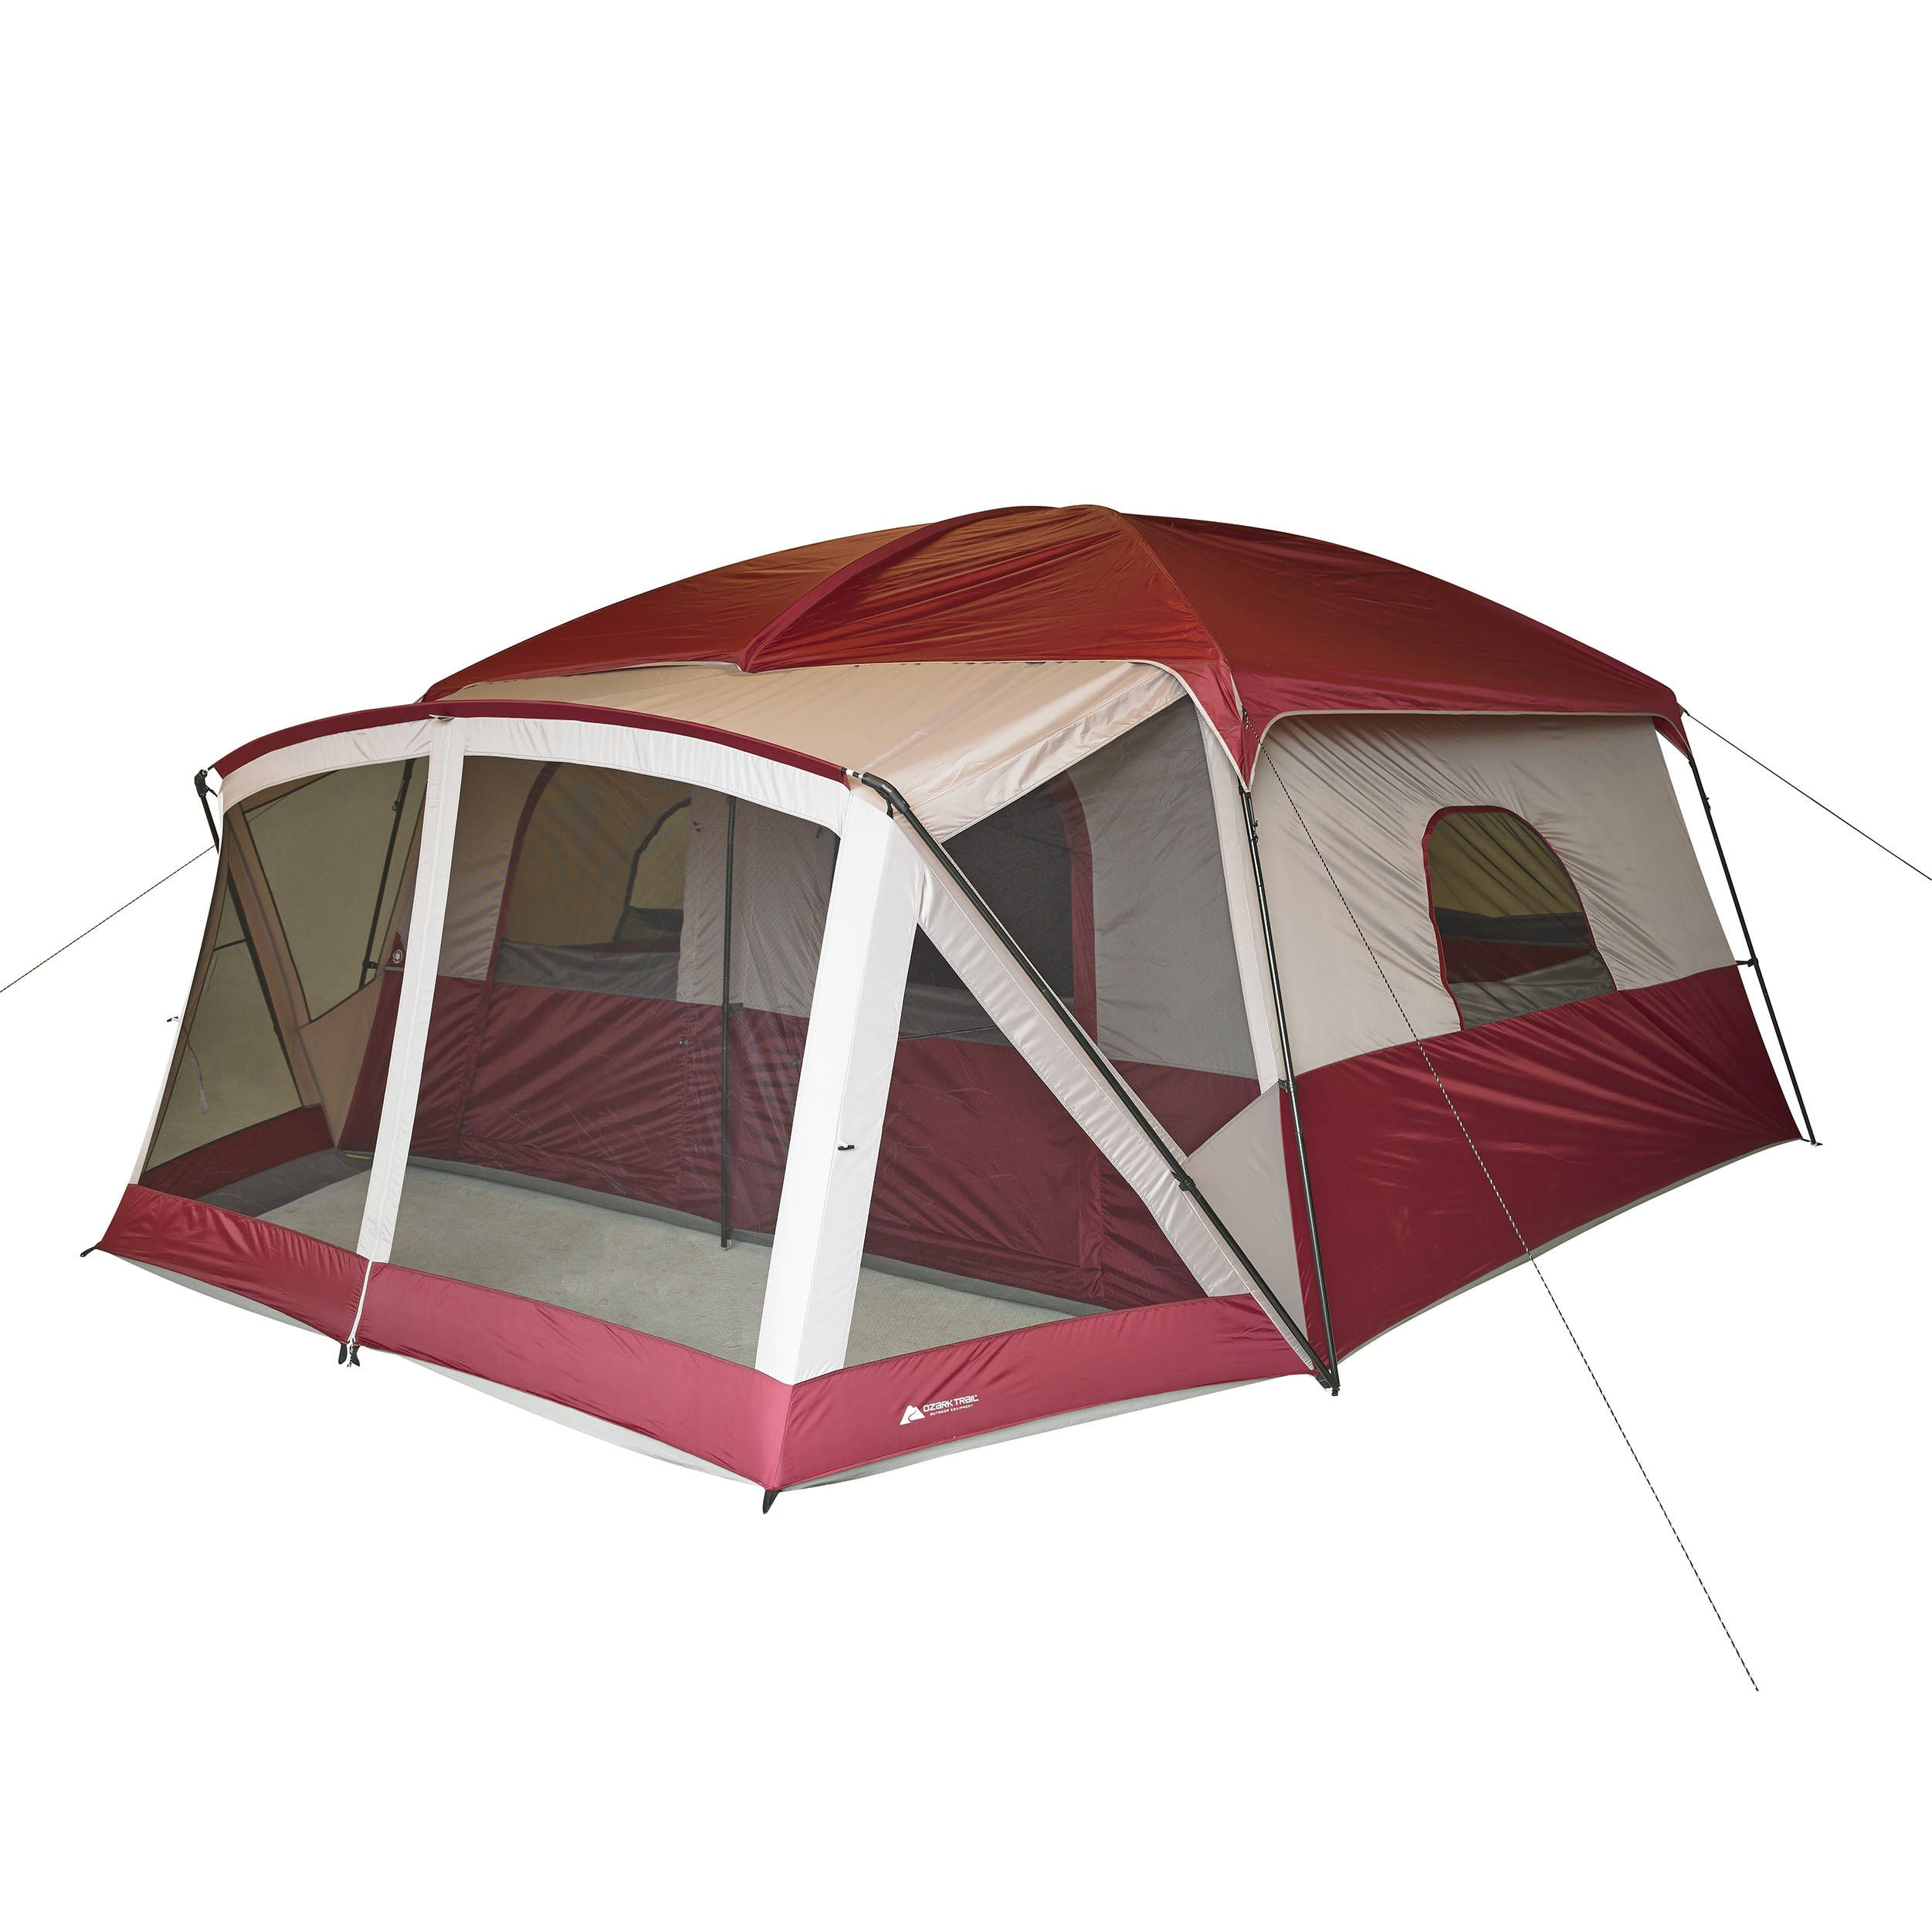 149 Free 2 Day Shipping Buy Ozark Trail 12 Person Cabin Tent With Screen Porch At Walmart Com Cabin Tent Cabin Camping 12 Person Tent